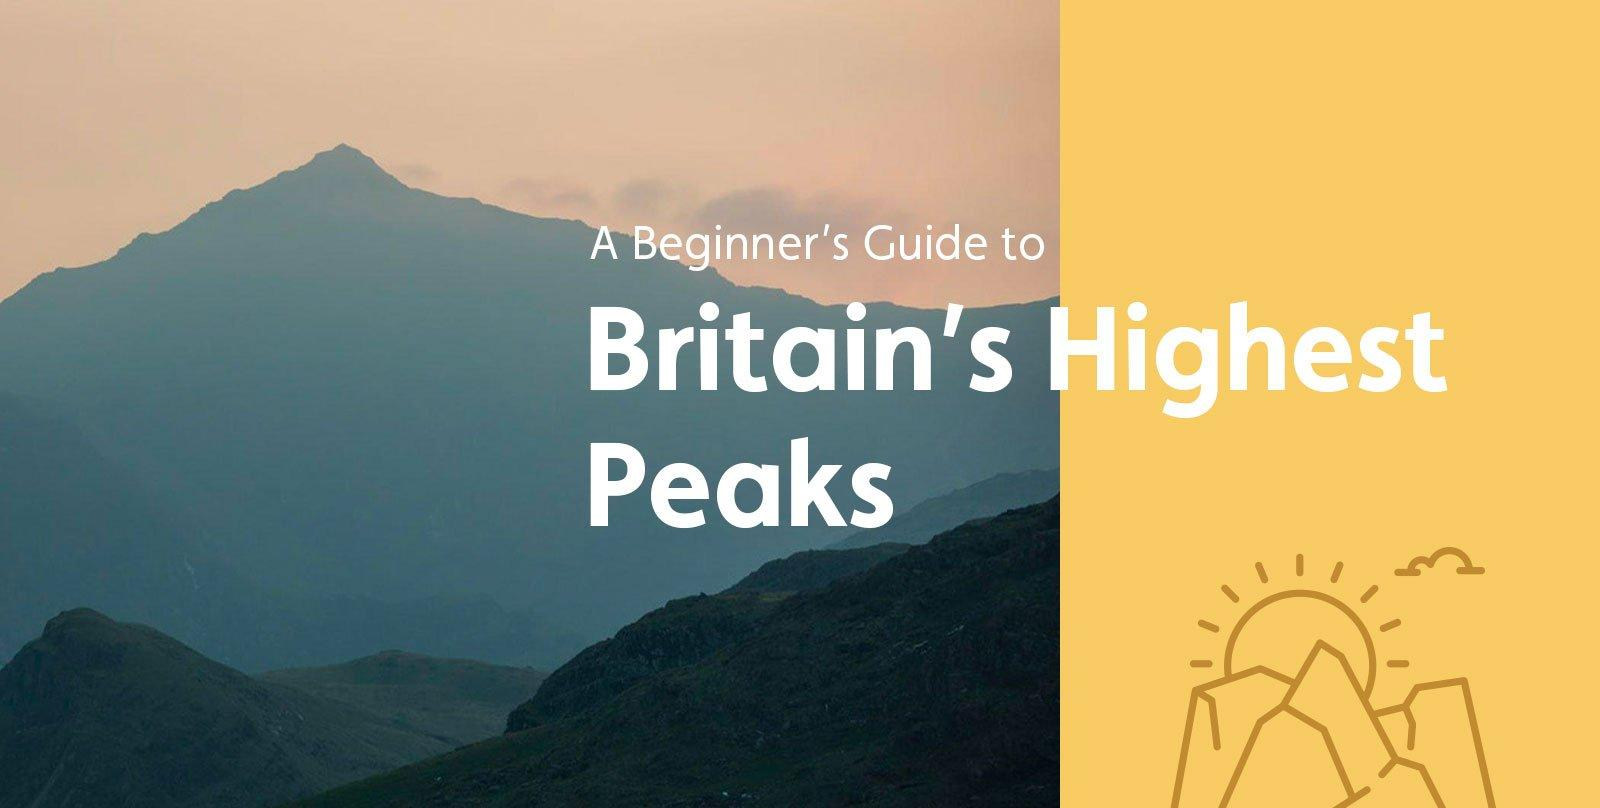 A Beginner's Guide to Britain's Highest Peaks